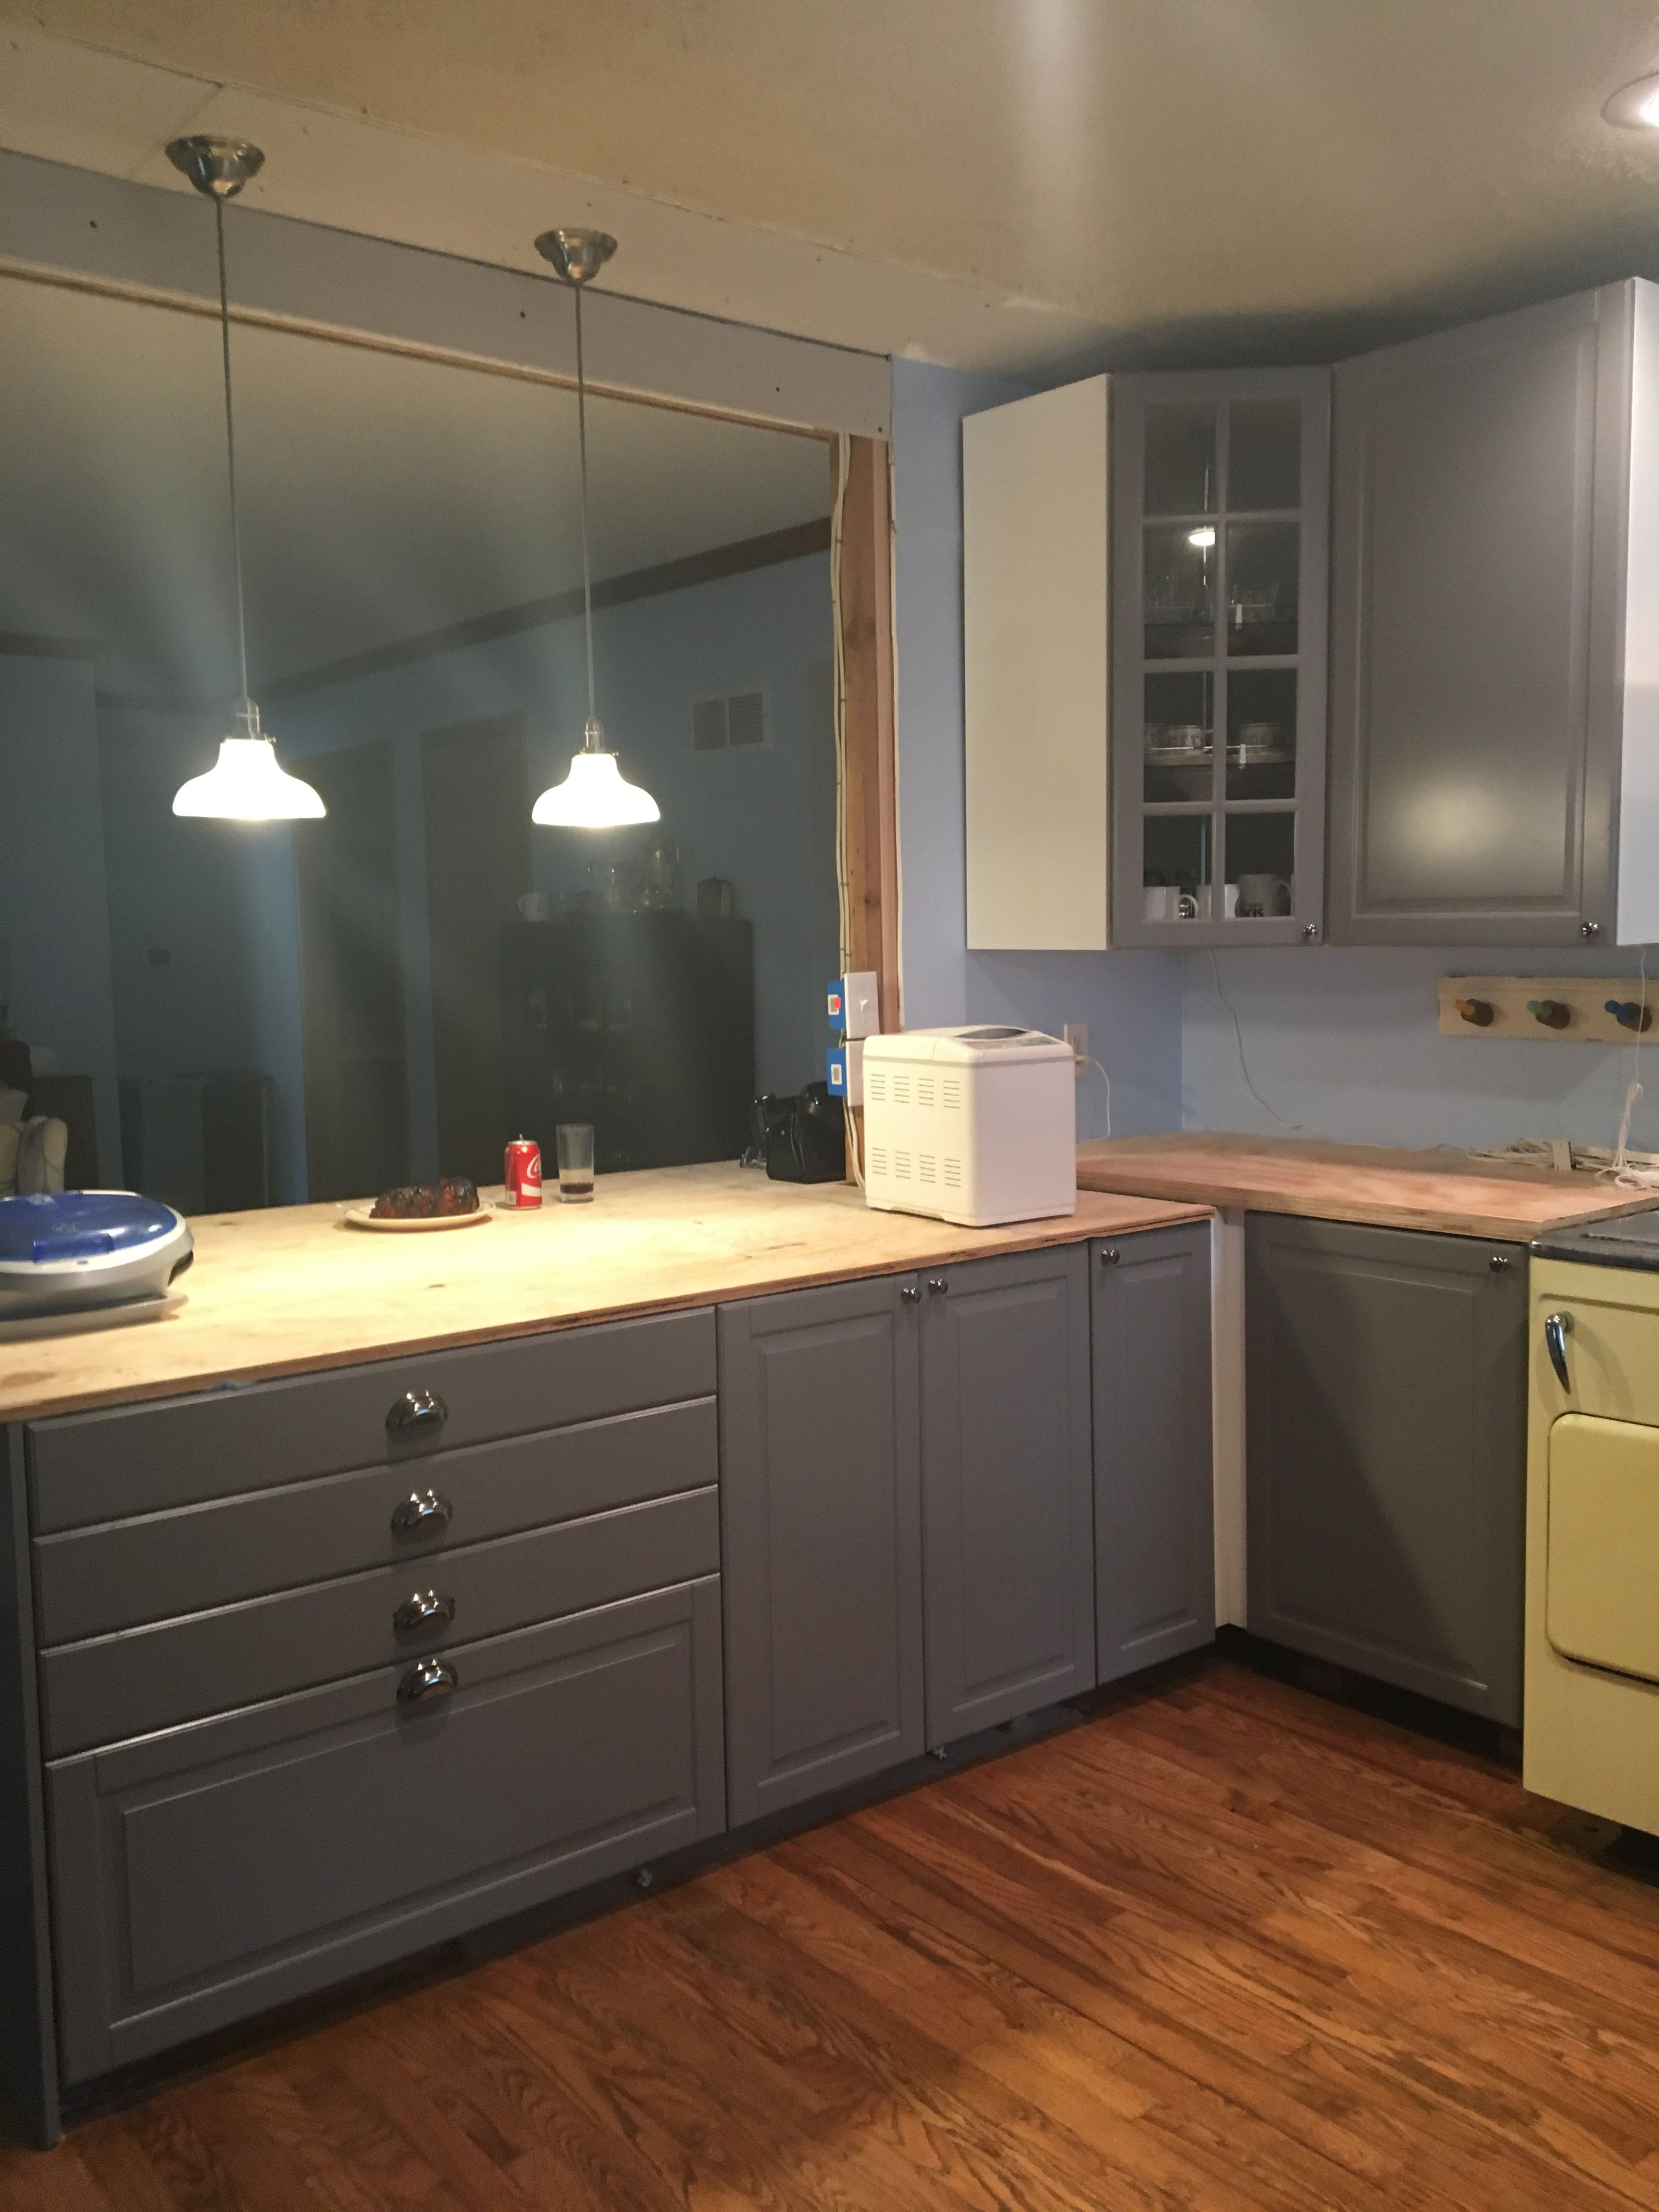 Pin By Tracy Saenz On Glad House Kitchen Cabinets Home Decor Kitchen